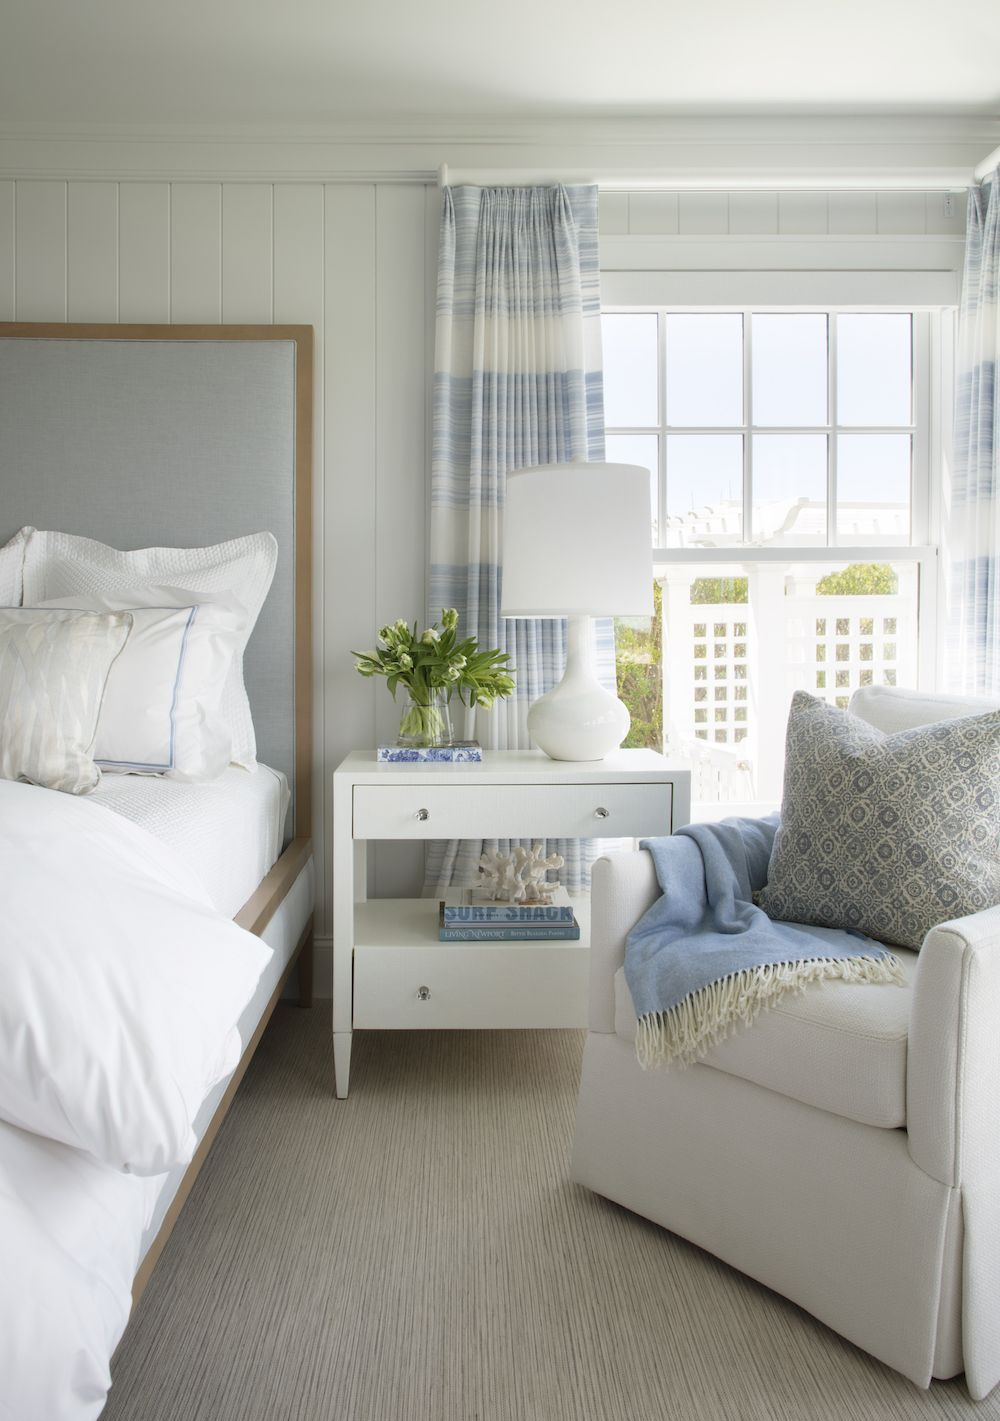 17 Coastal Nightstands For A Summer Home